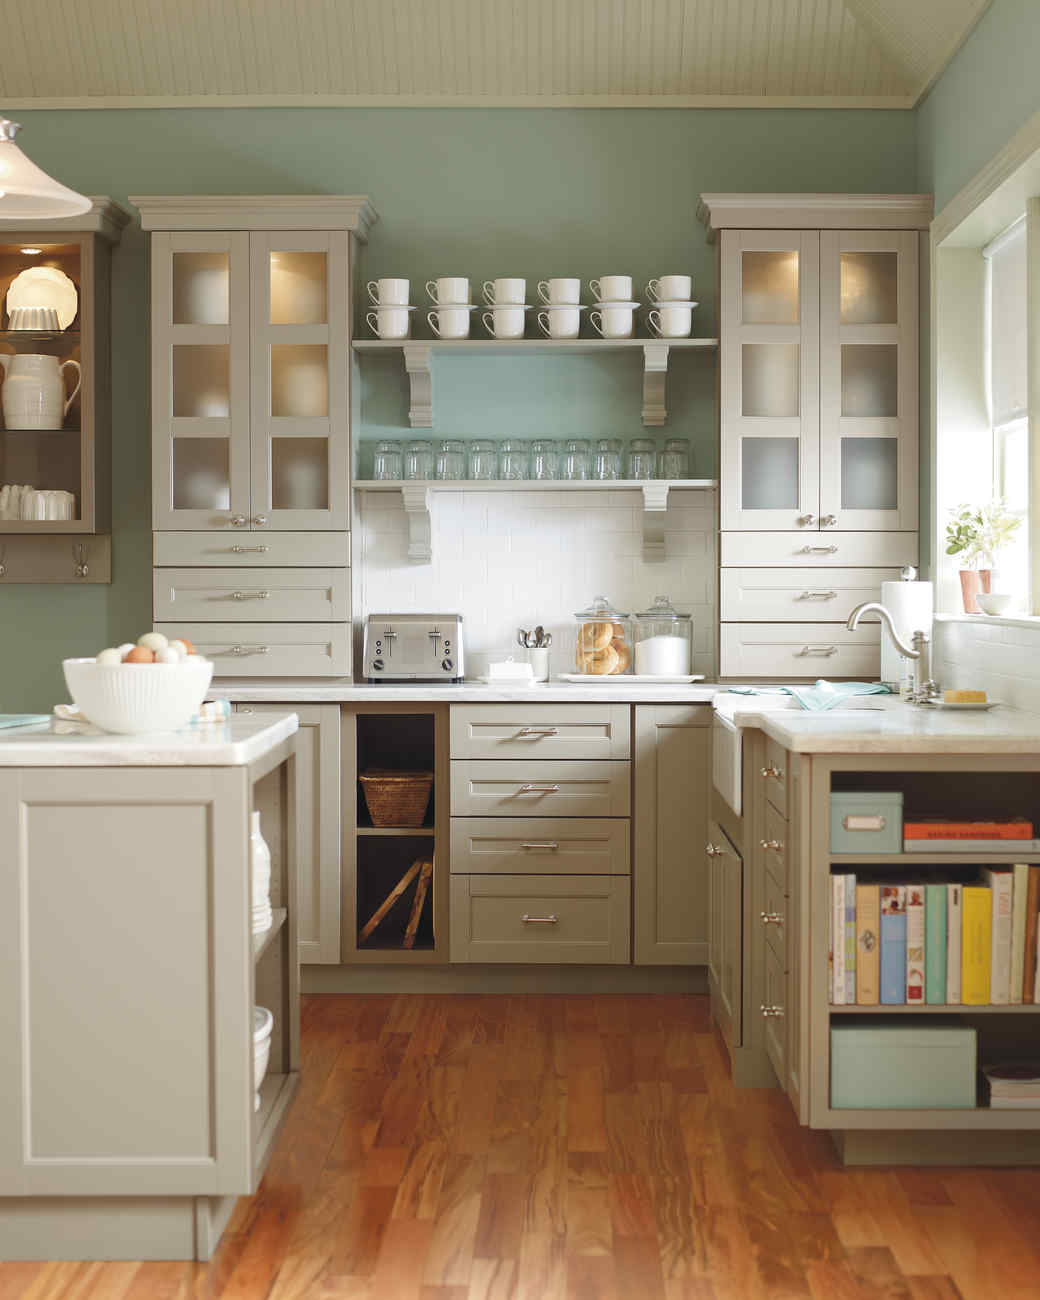 How To Pick Kitchen Paint Colors